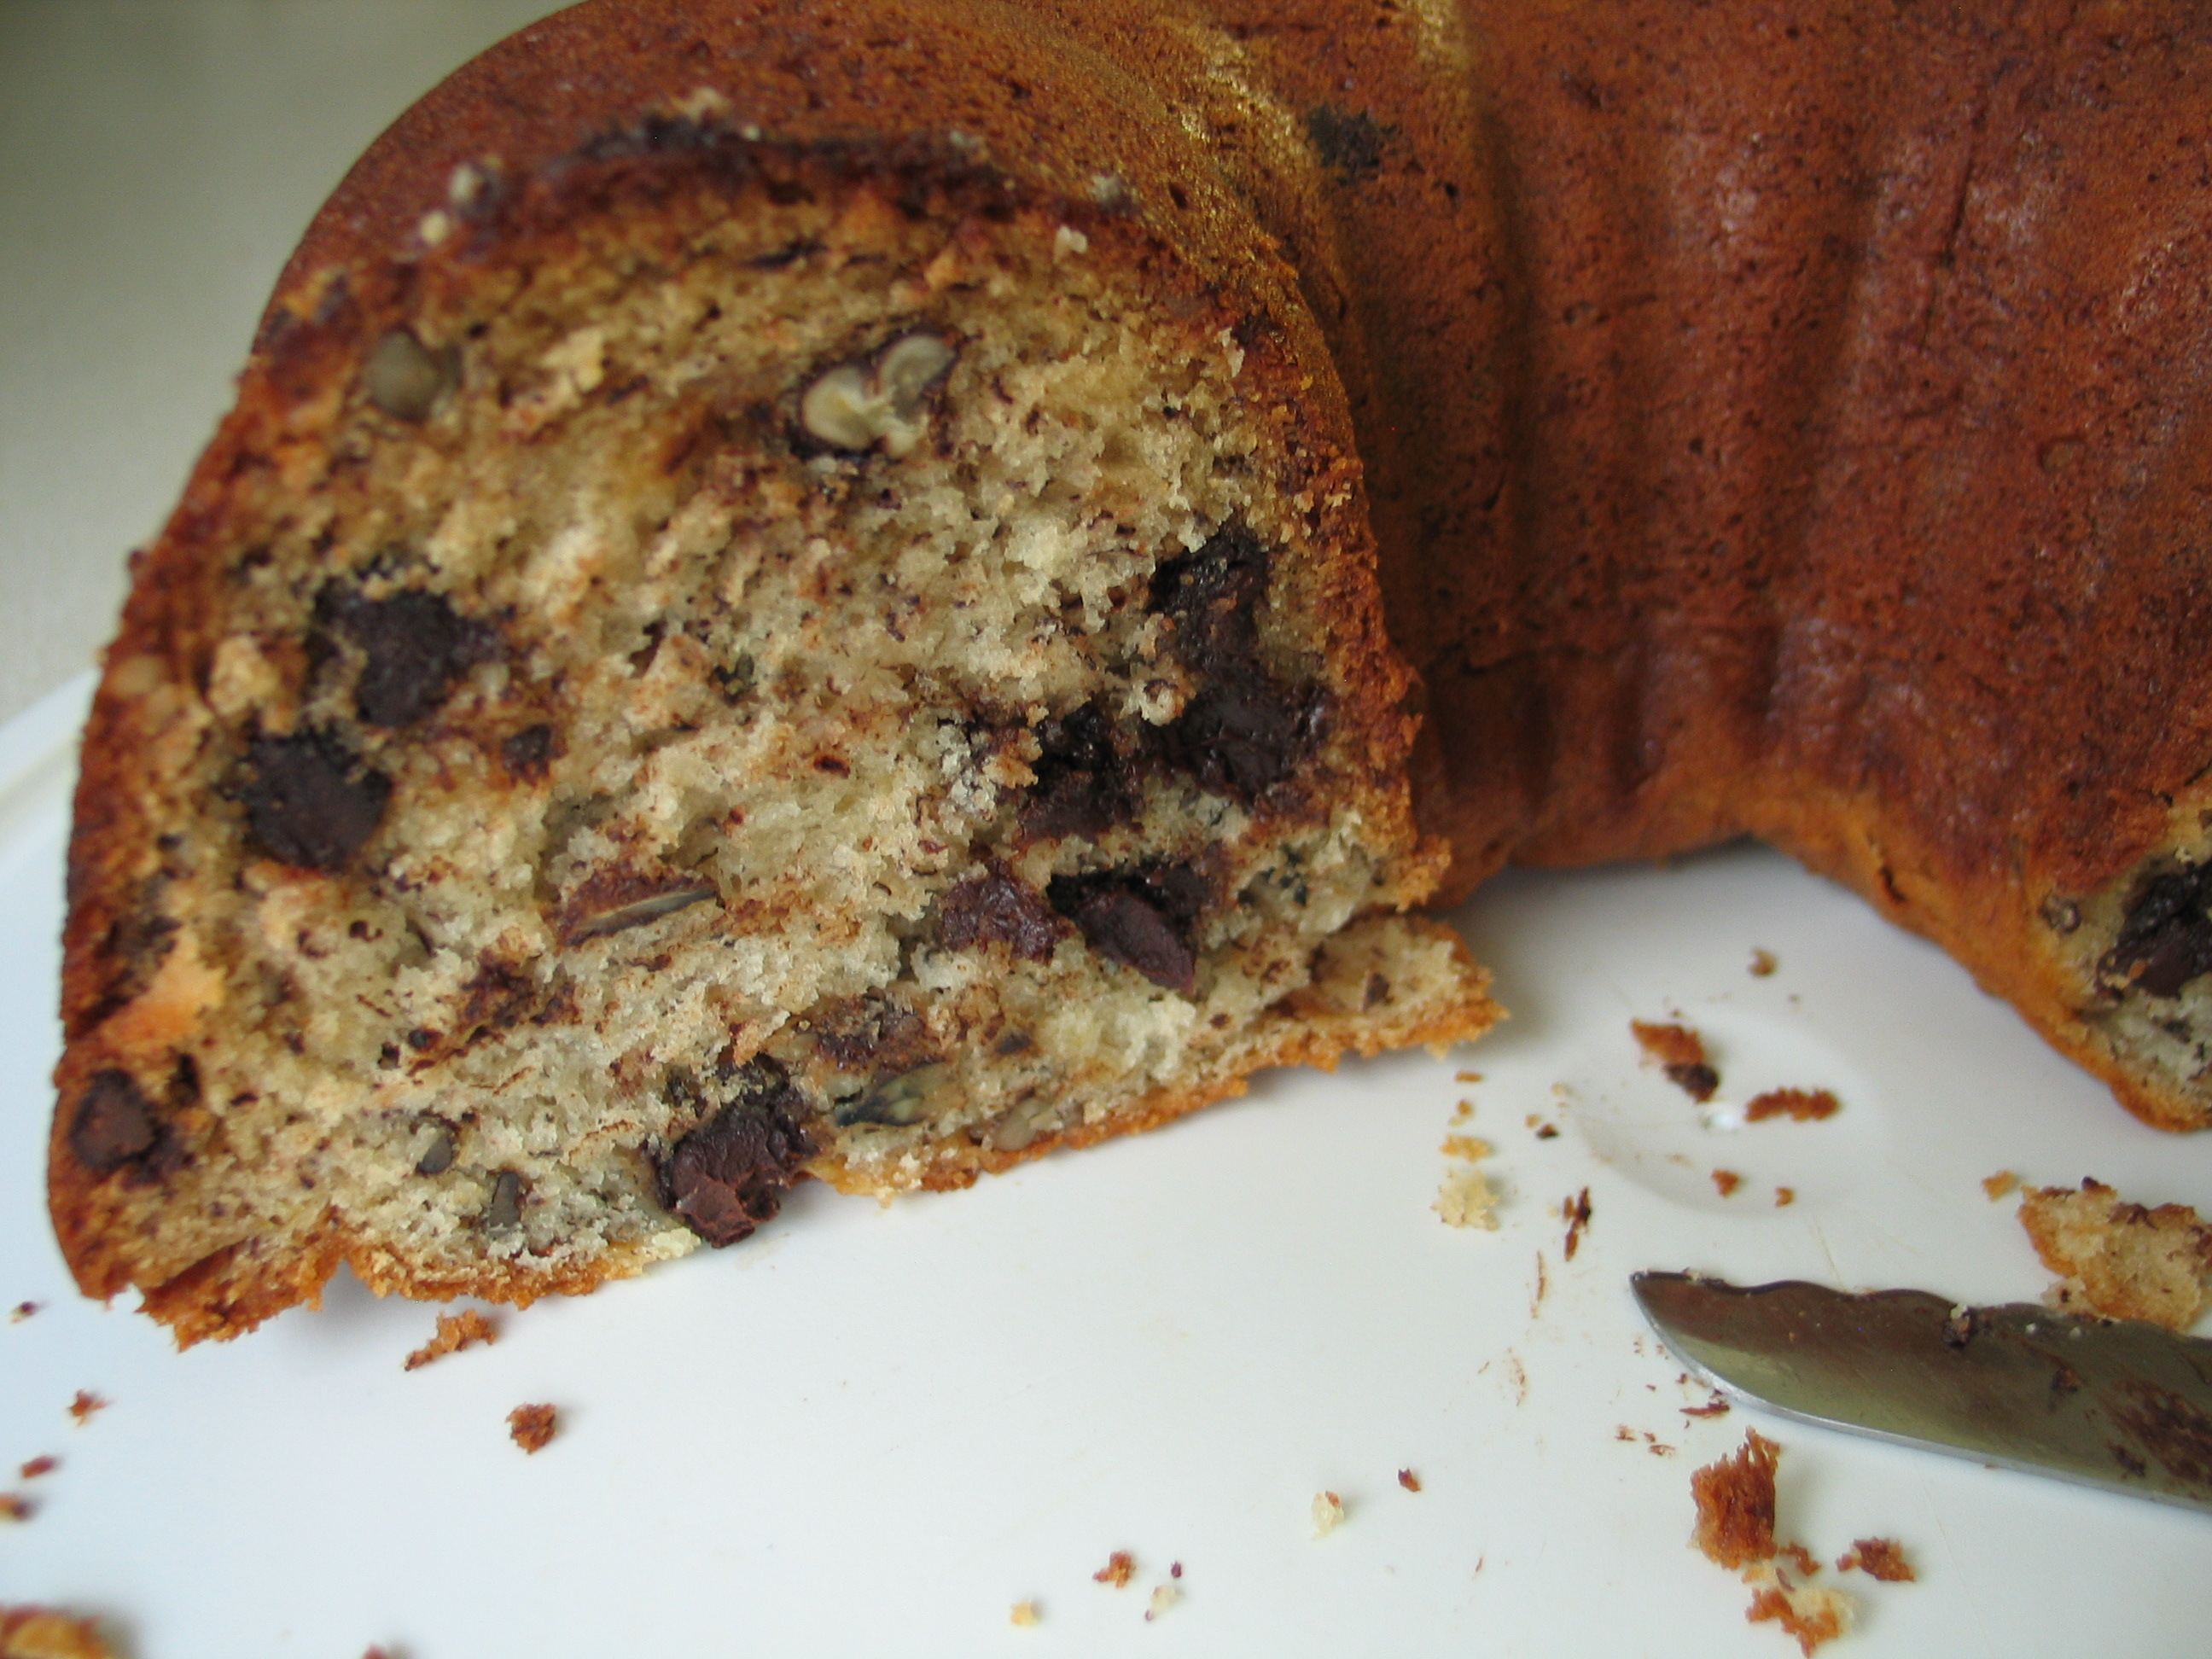 Deannas Daughter Banana Chocolate Chip Pecan Bundt Cake